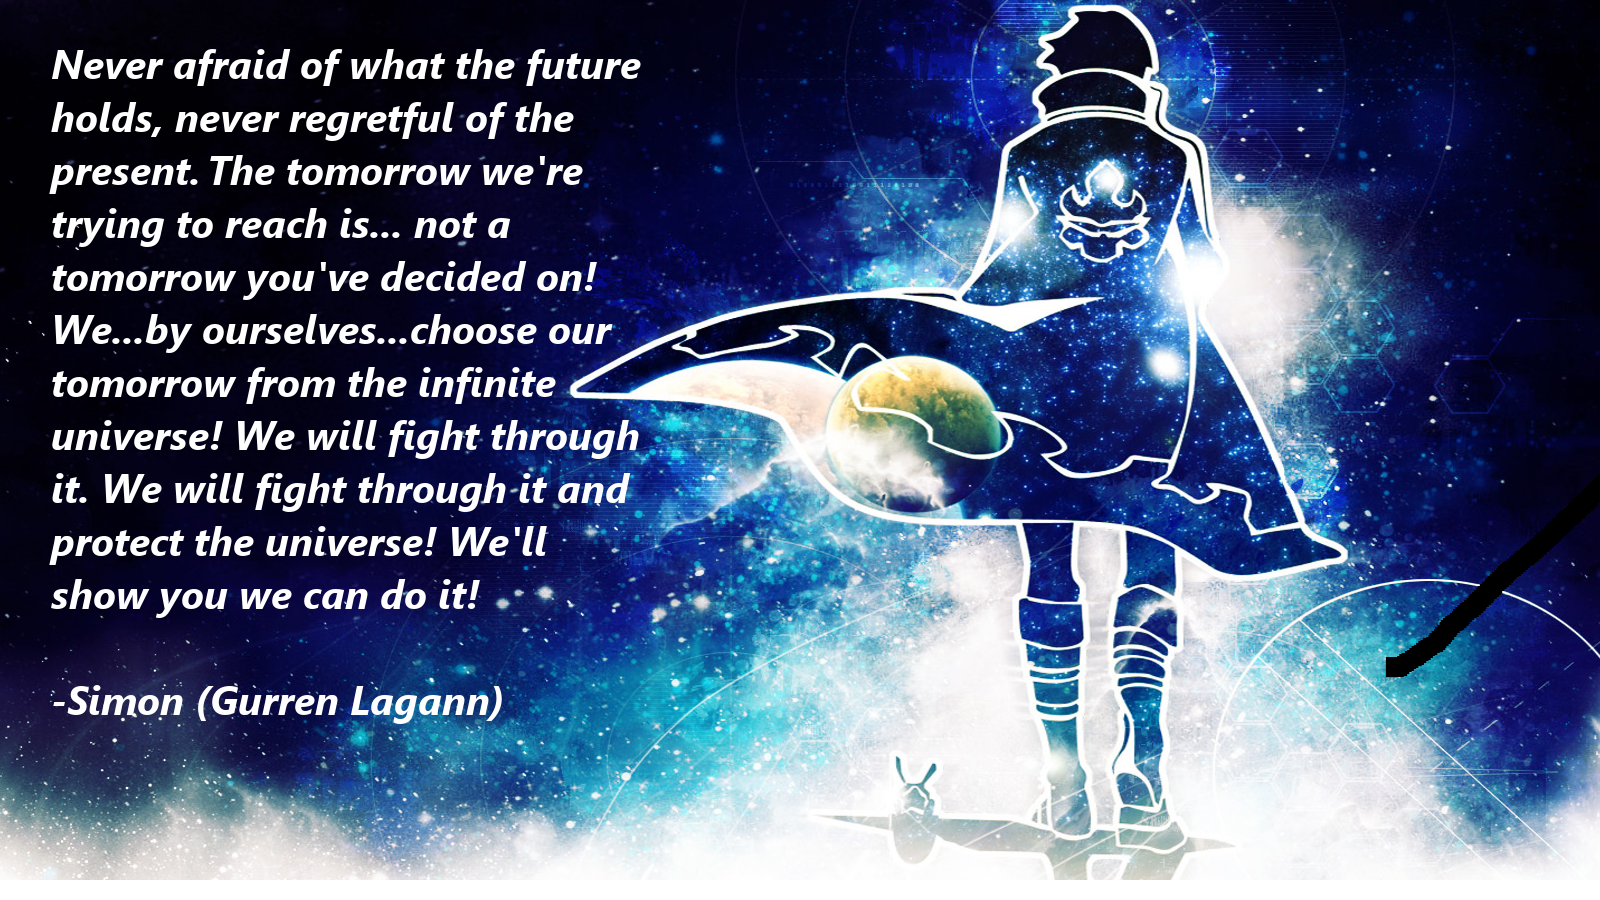 Military Anime Wallpapers Hd Quotes Backgrounds With Art: Gurren Lagann Quote 1 By 2494Paul On DeviantArt